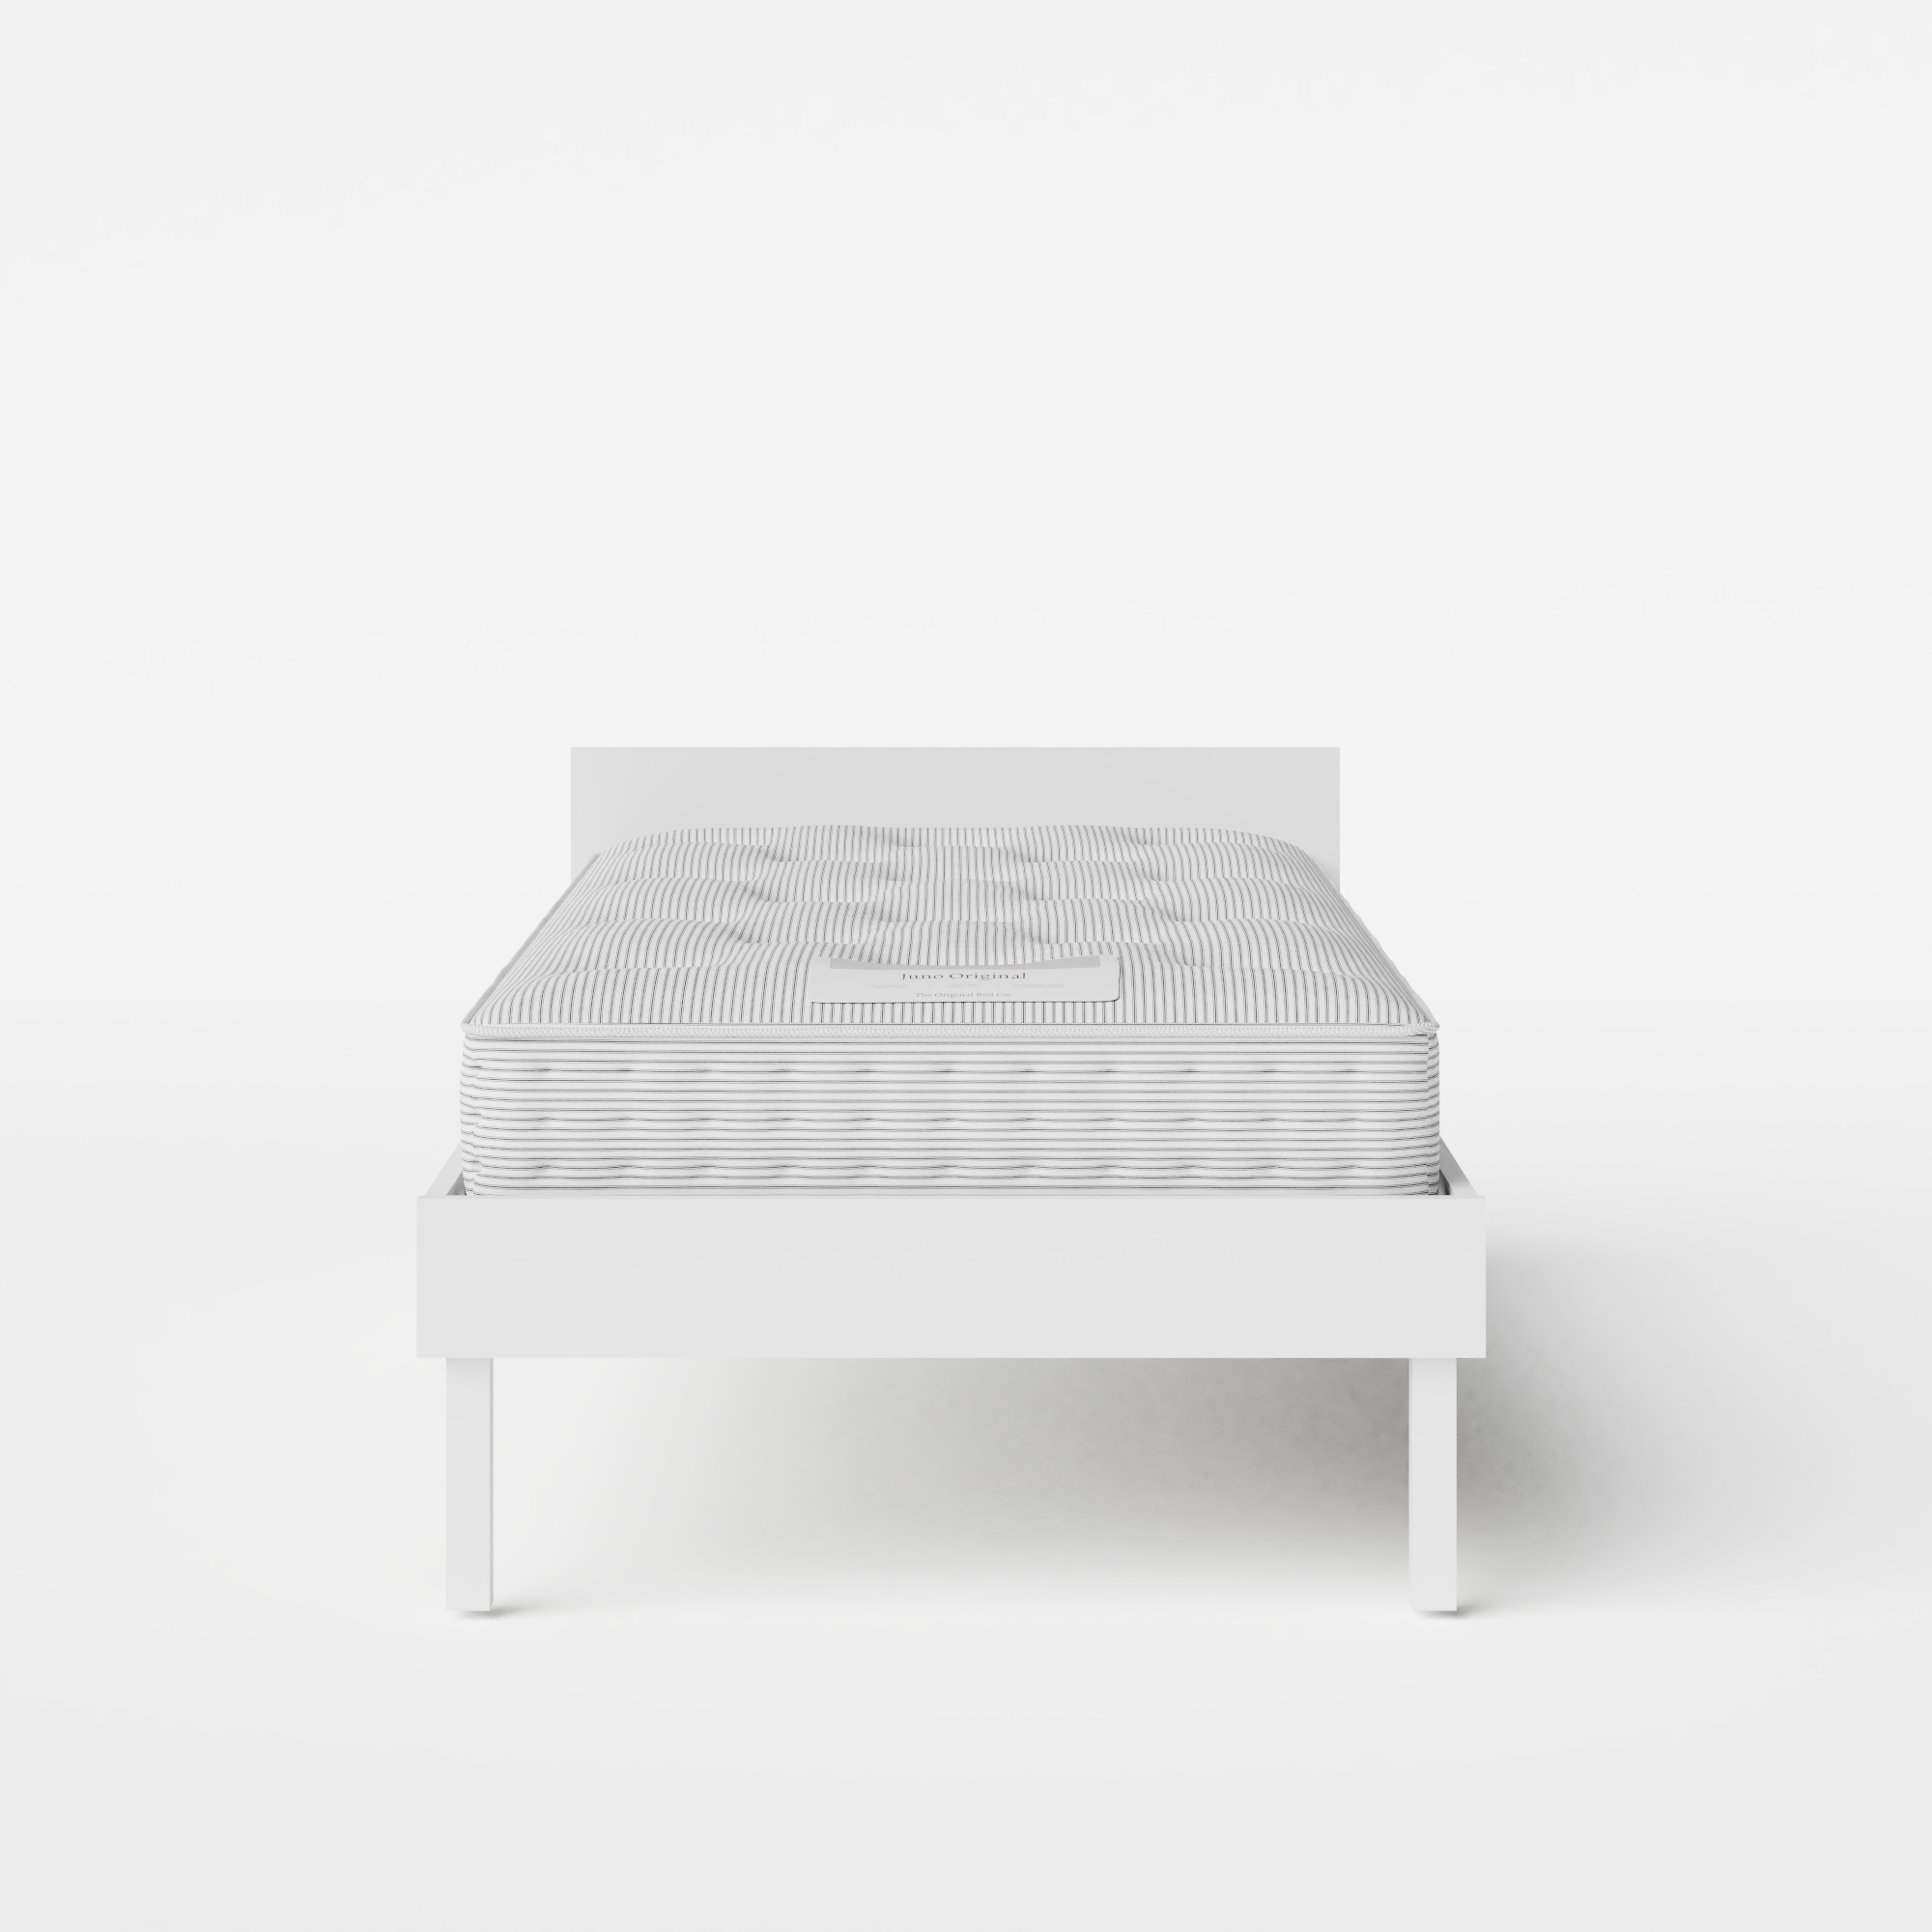 Fuji Painted single painted wood bed in white with Juno mattress